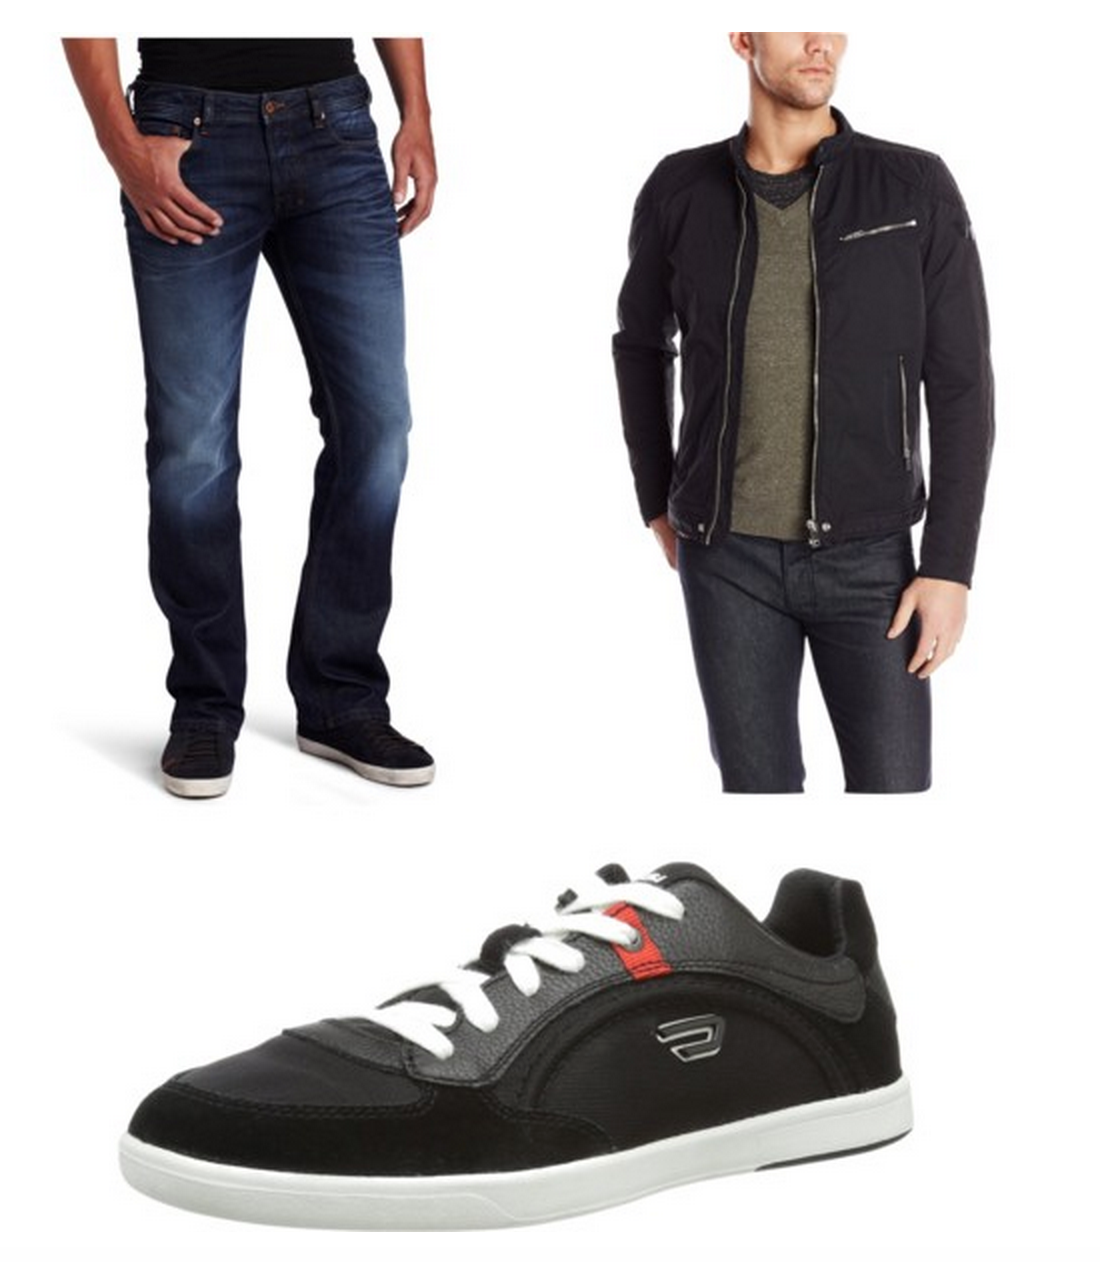 50% Off Diesel Menswear – Jeans, Polos, Jackets, Sneakers, and more!